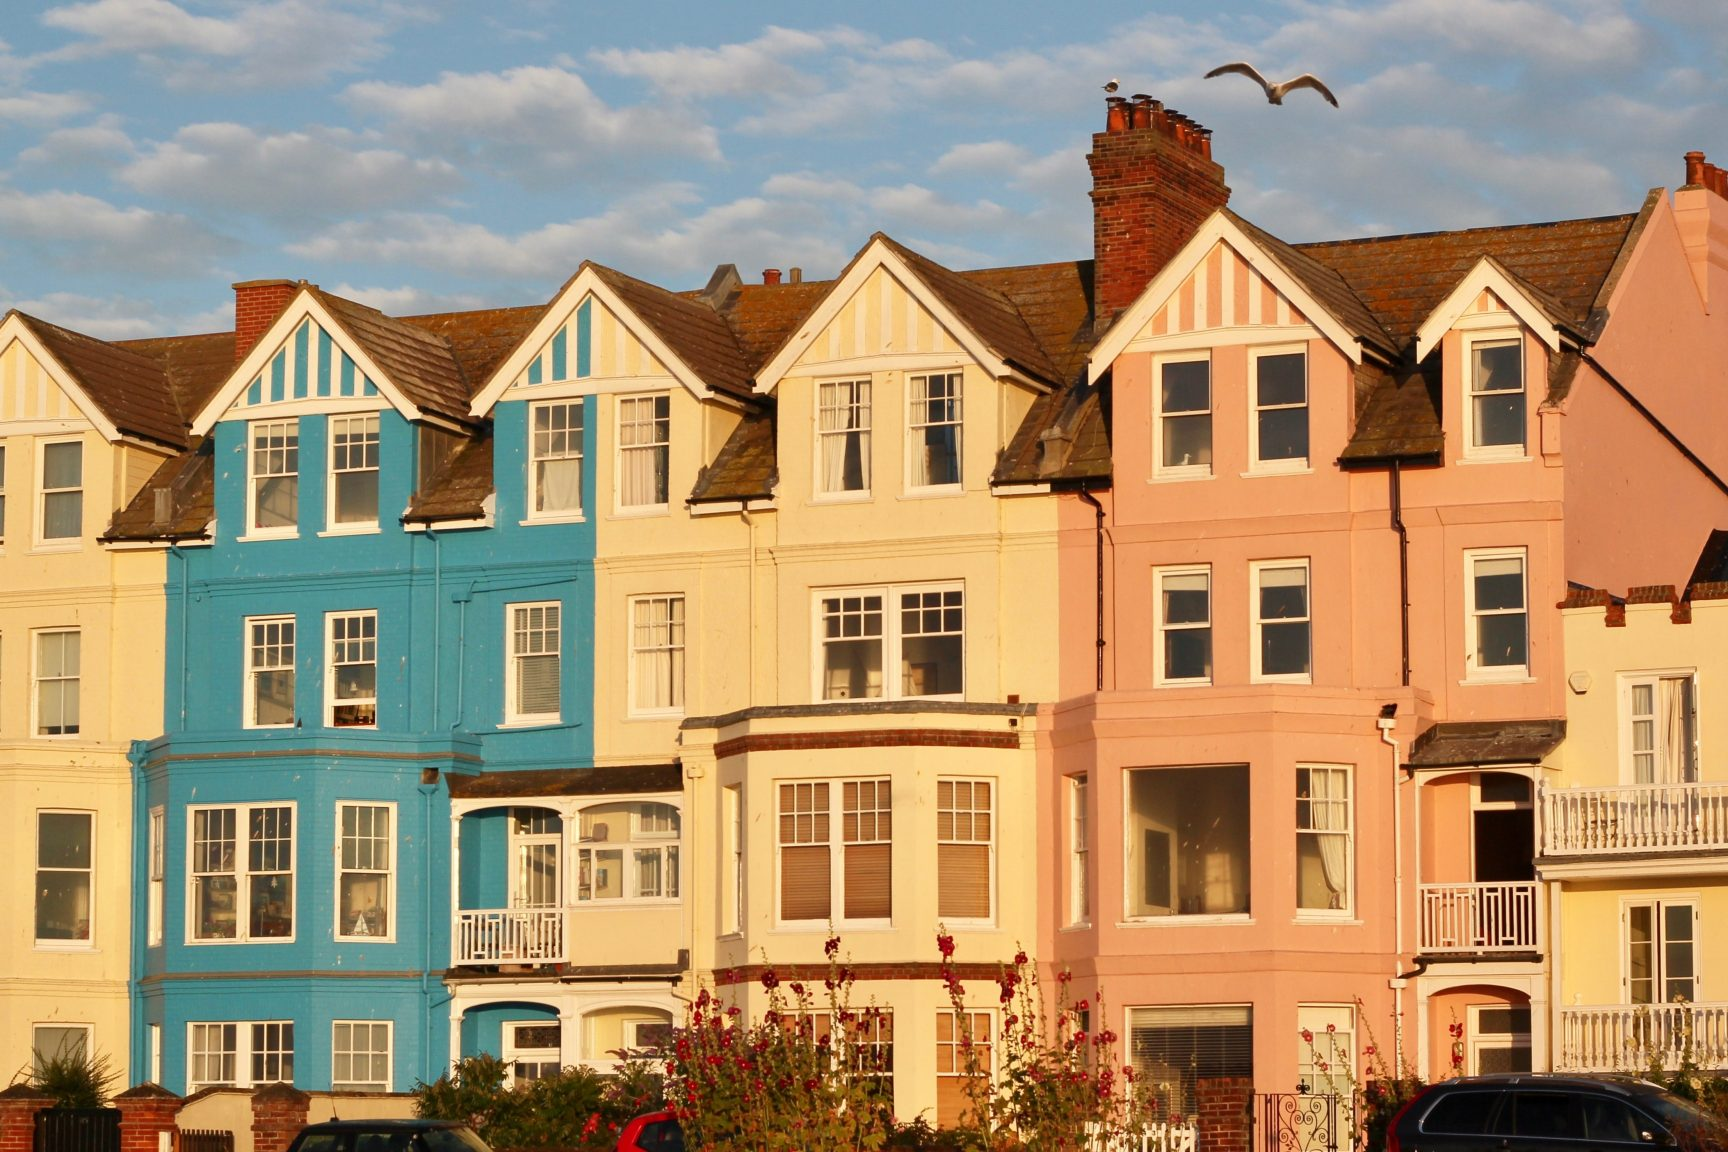 A row of different coloured houses glowing in the sunset